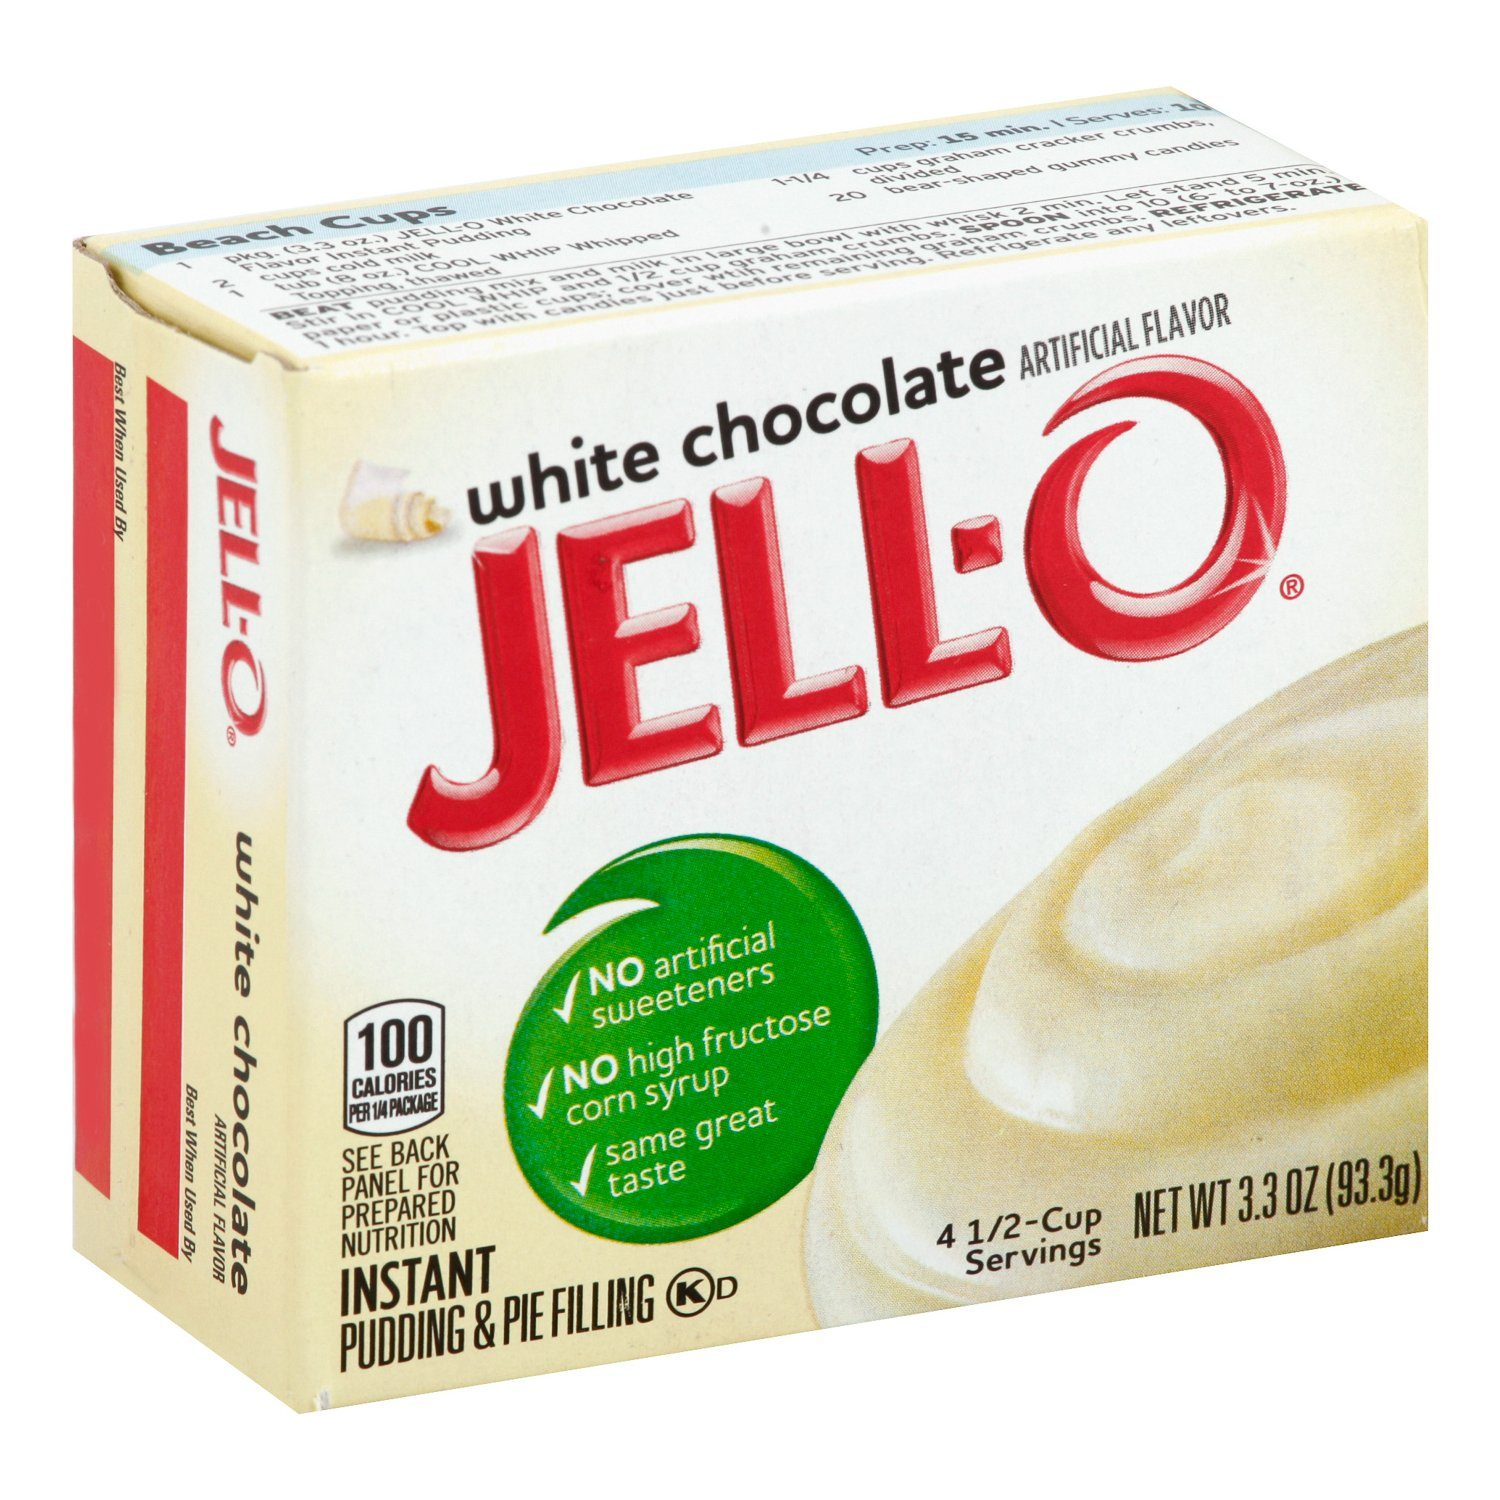 Jell-O Instant Pudding & Pie Filling Mixes Jell-O White Chocolate 3.3 Ounce